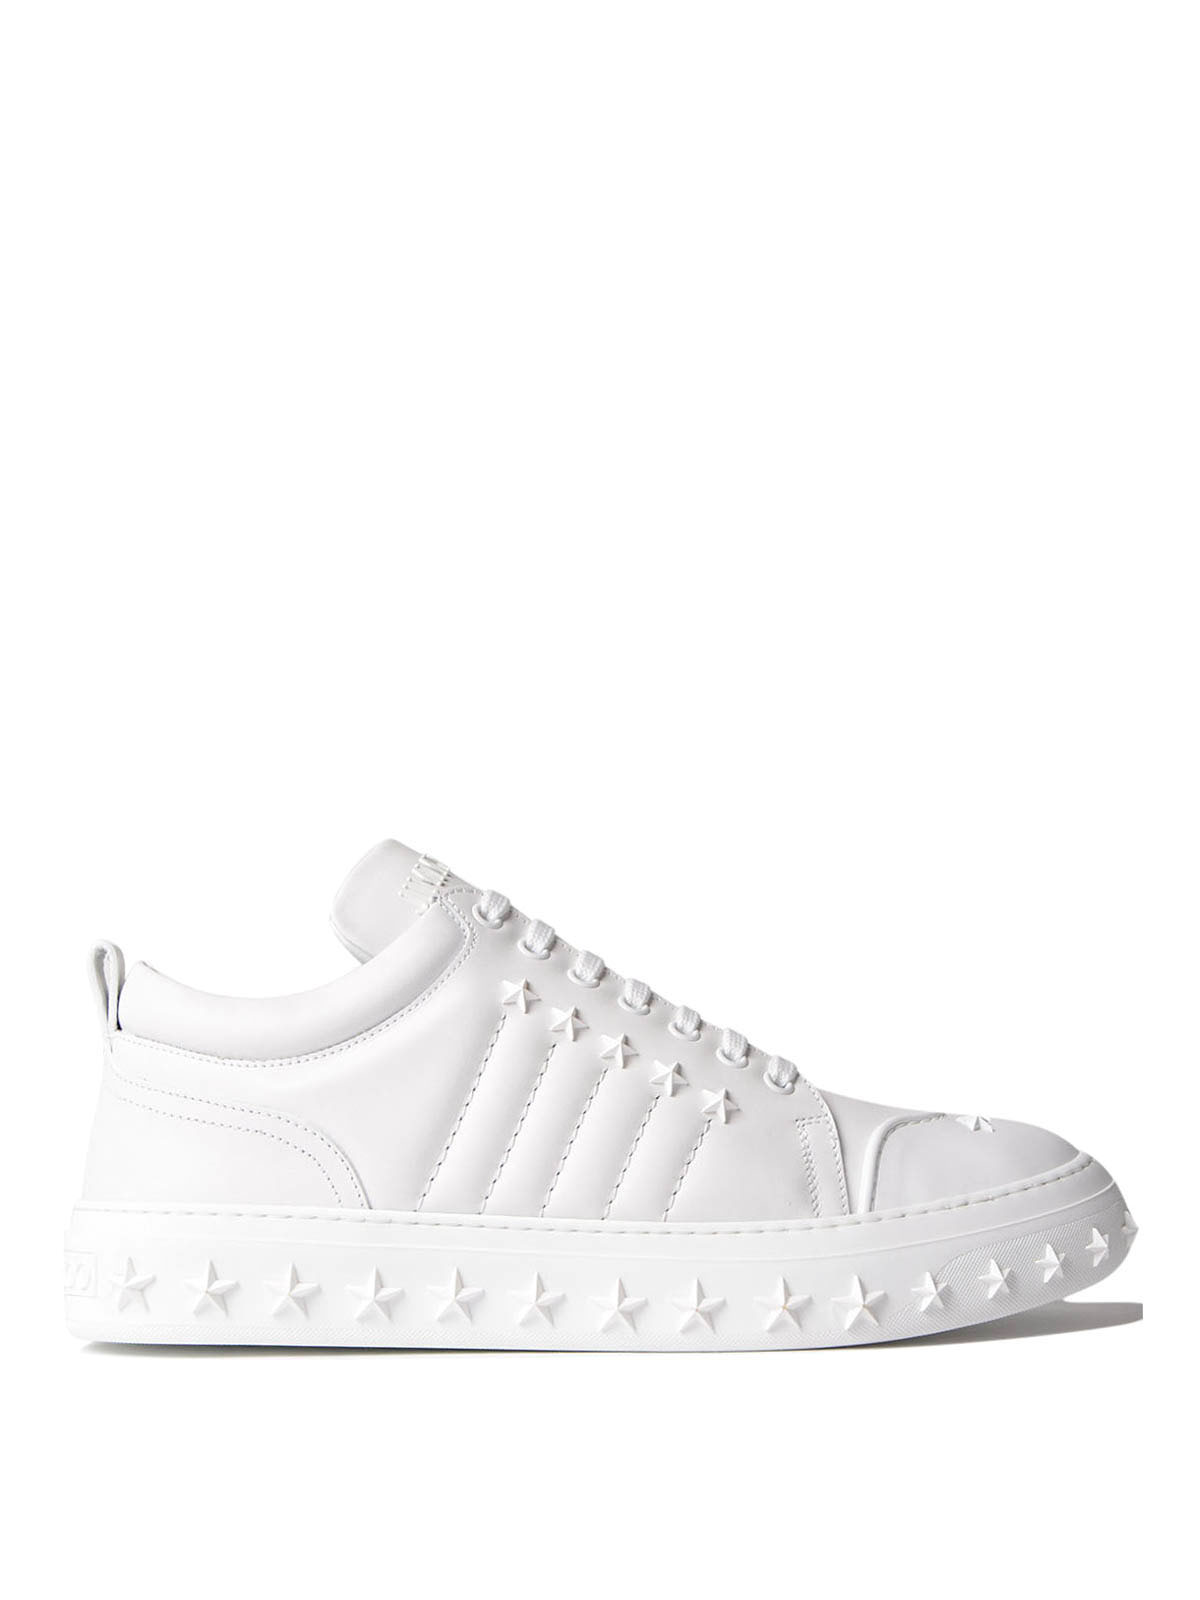 Chaseosaultra Chaussures De Sport Chase Baskets Jimmy Choo q70wY